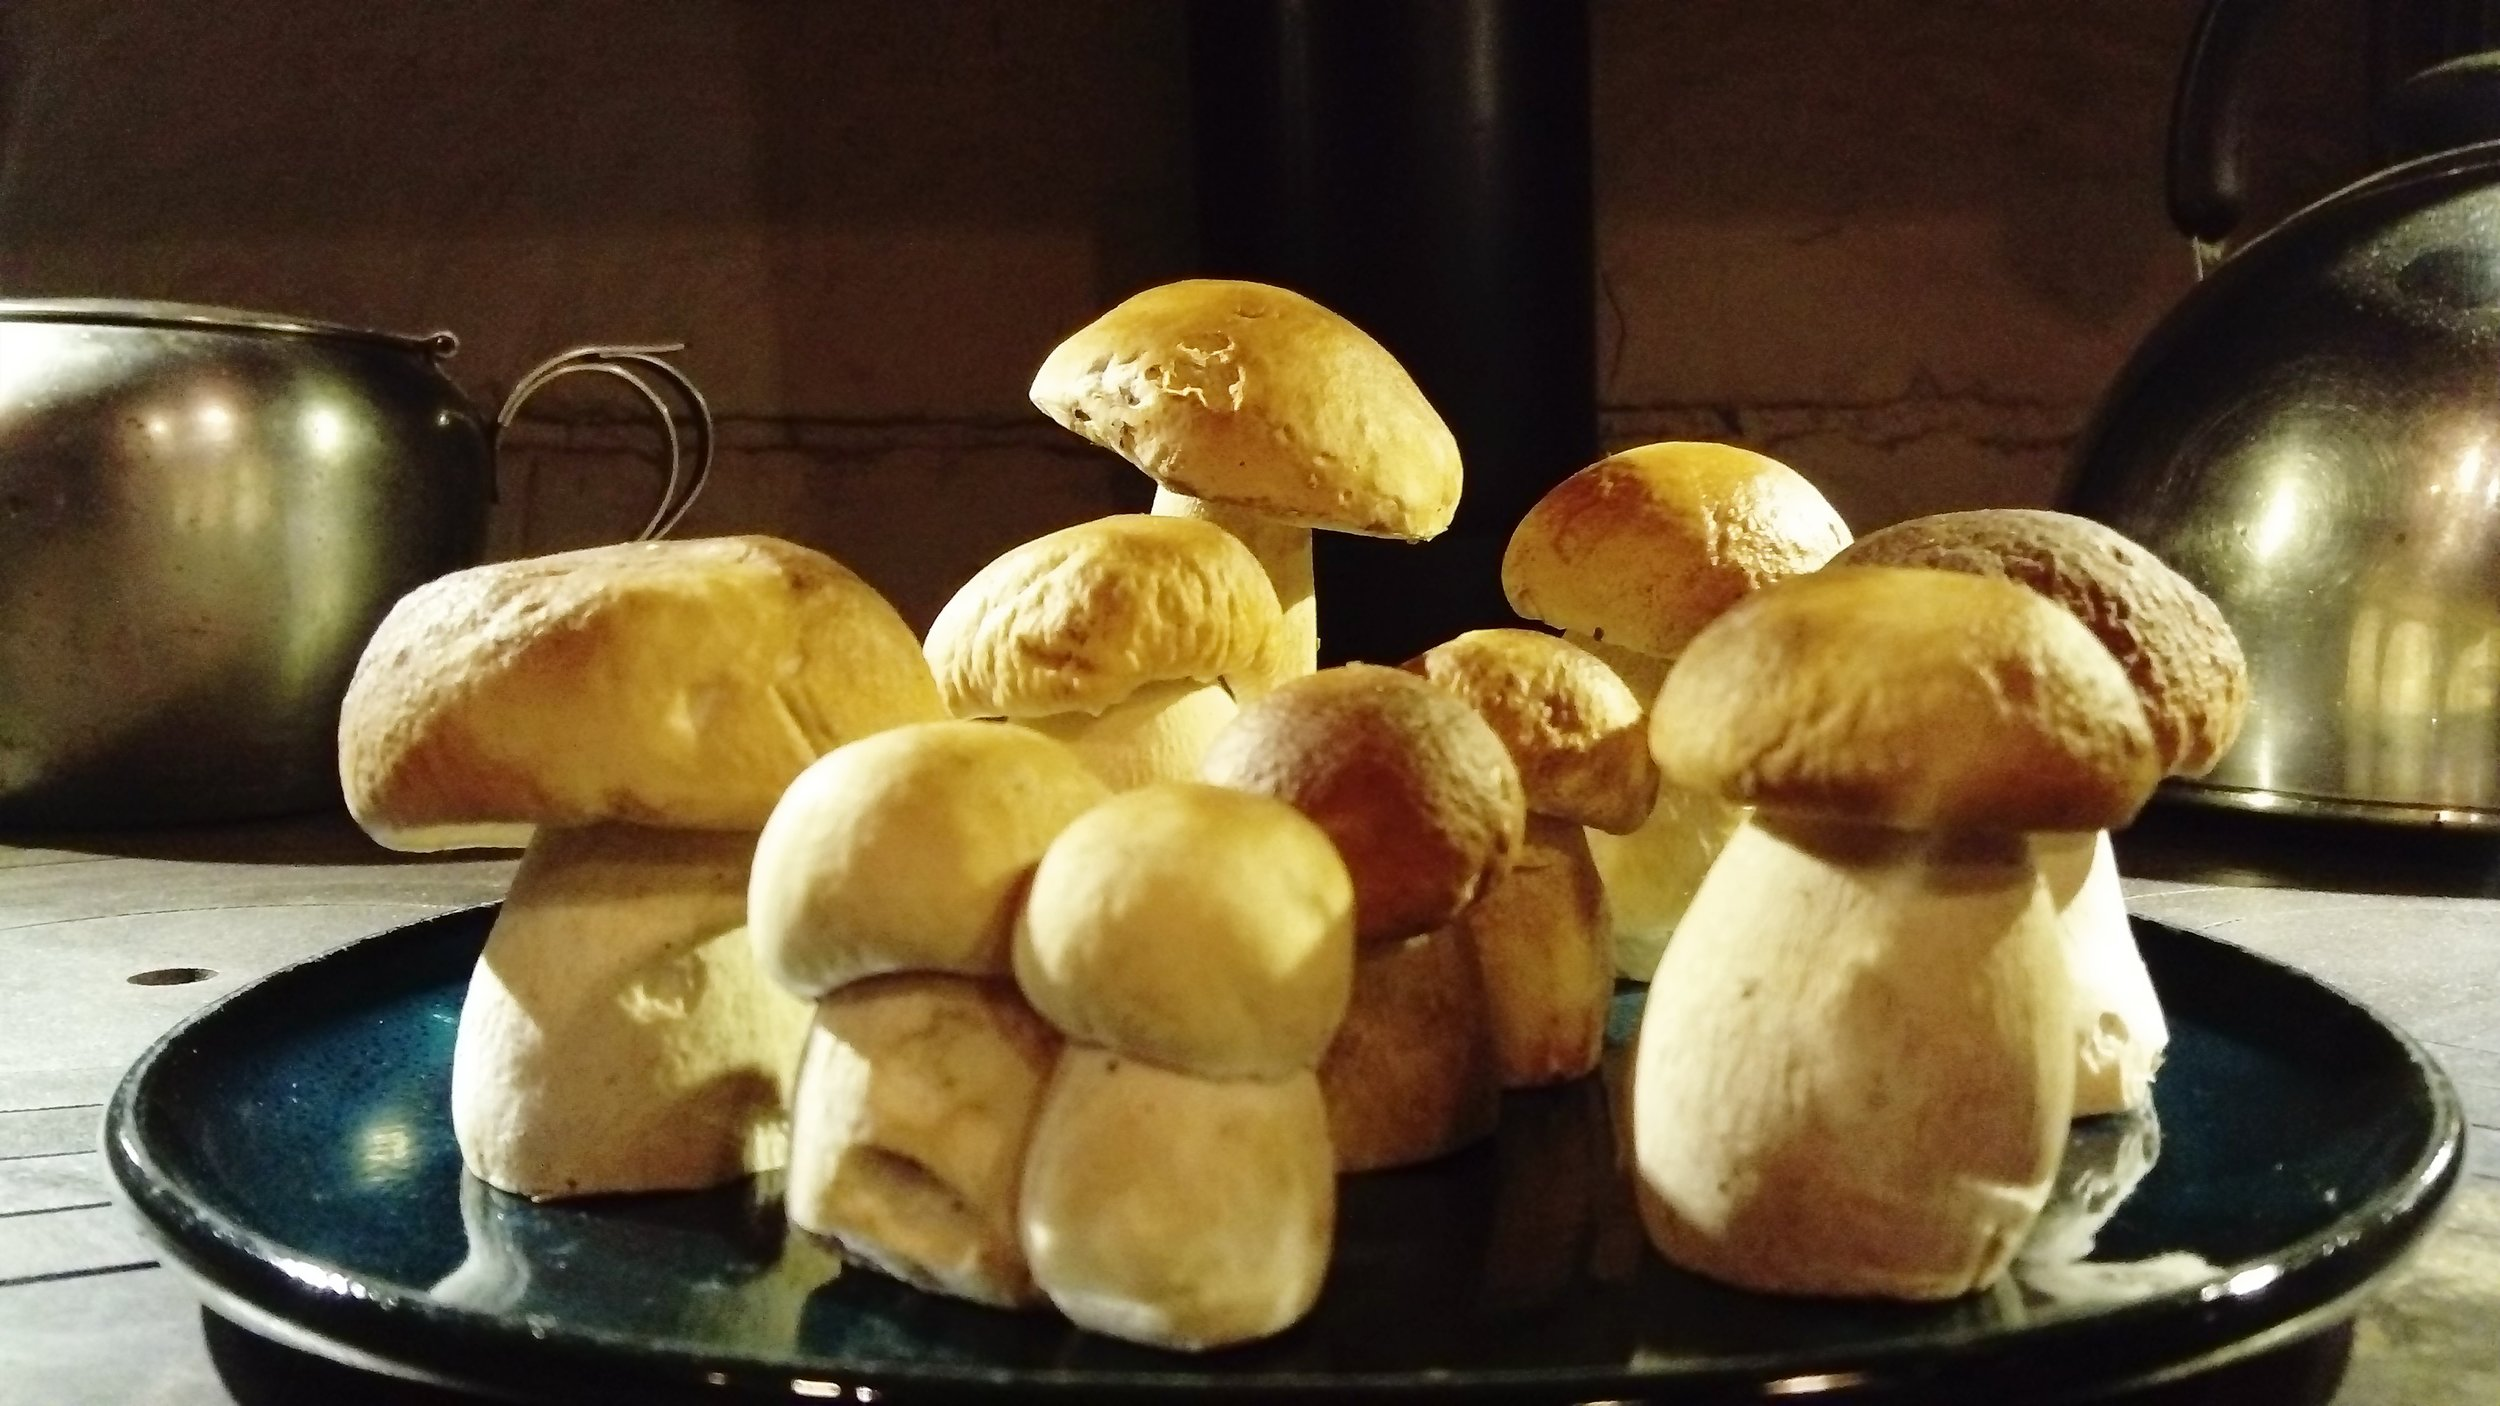 Cepes - a local delicacy. Come at the right time of year and you'll find them growing in the woods.